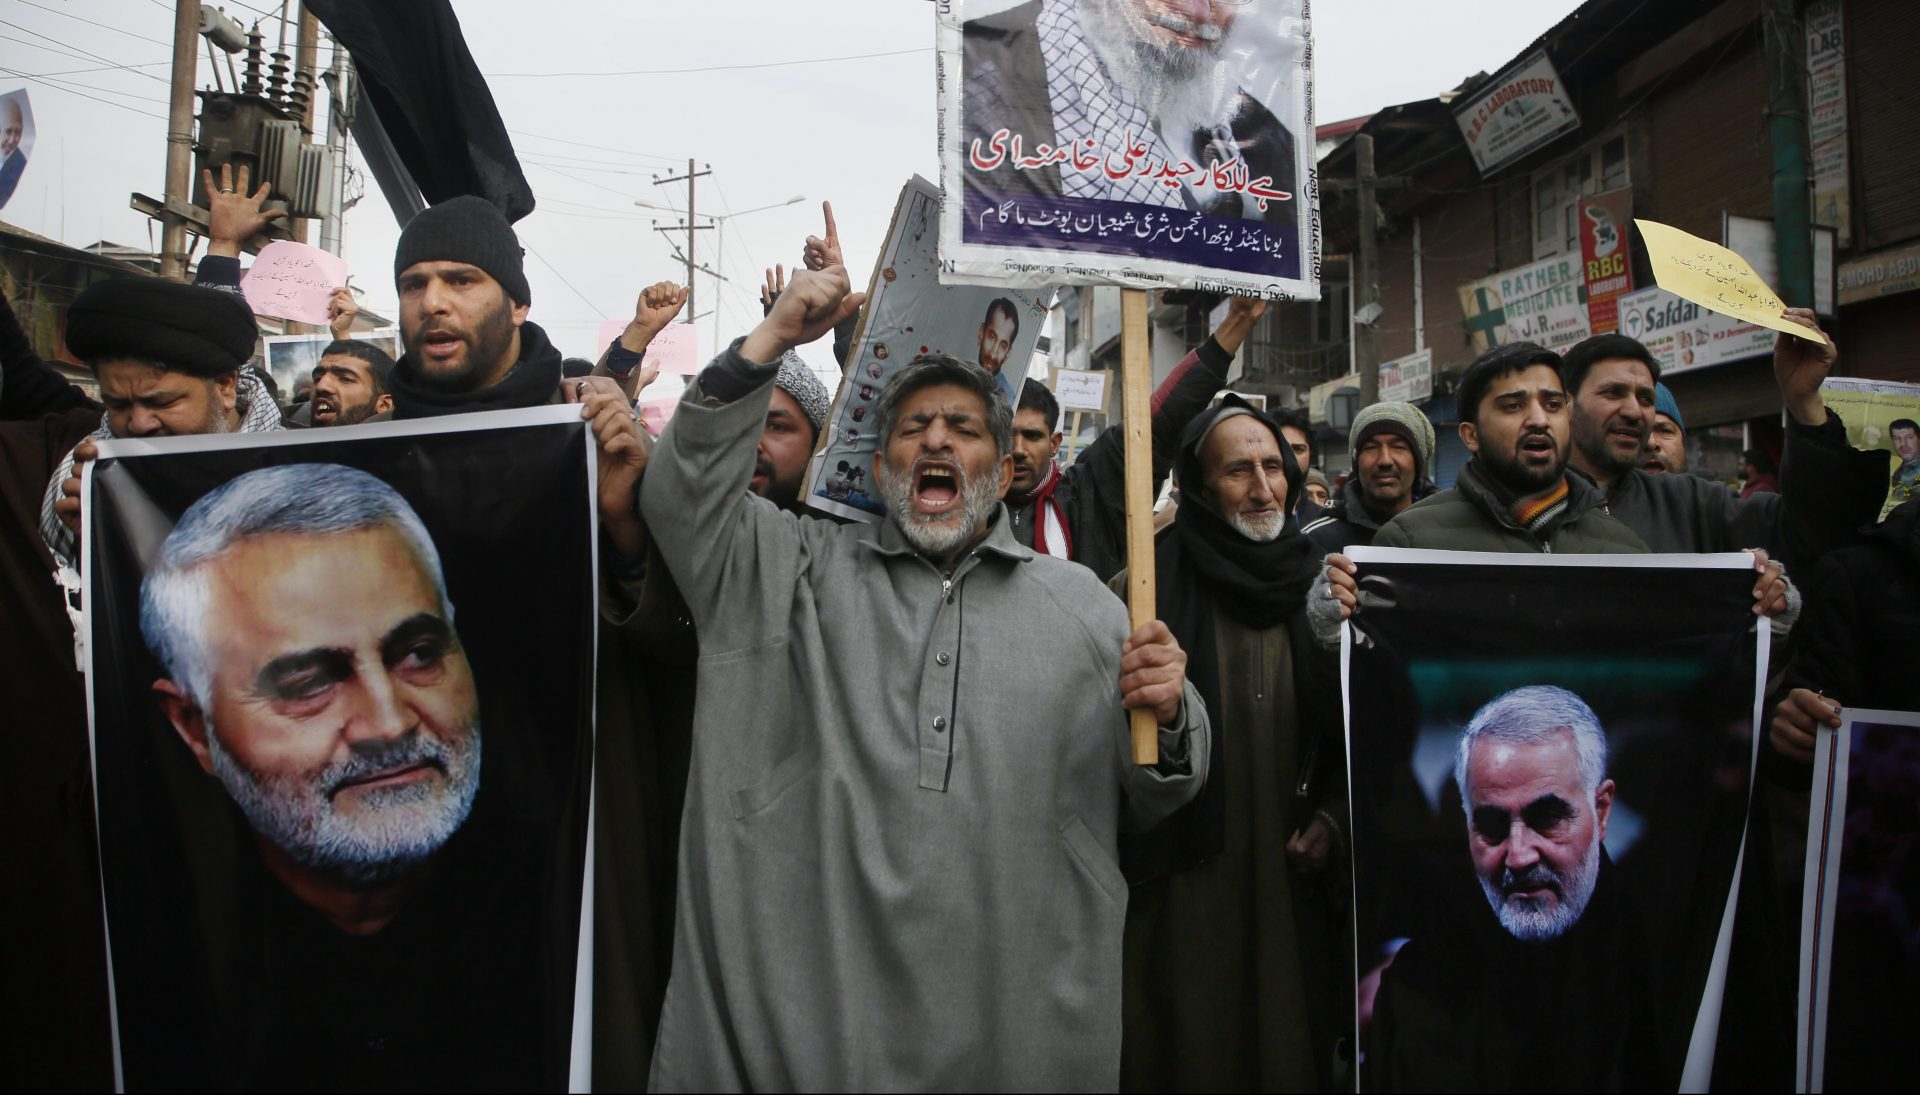 Kashmiri Shiite Muslims shout anti American and anti Israel slogans during a protest against U.S. airstrike in Iraq that killed Iranian Revolutionary Guard Gen. Qassem Soleimani, seen in the photographs, at Magam 37 kilometers (23 miles) north of Srinagar, Indian controlled Kashmir, Friday, Jan. 3, 2020. The killing of Iran's top military commander Gen. Qassem Soleimani triggered several anti-U.S. protests in Indian-controlled Kashmir, the protesters also shut down shops and businesses in Magam and Budgam towns in south Kashmir.